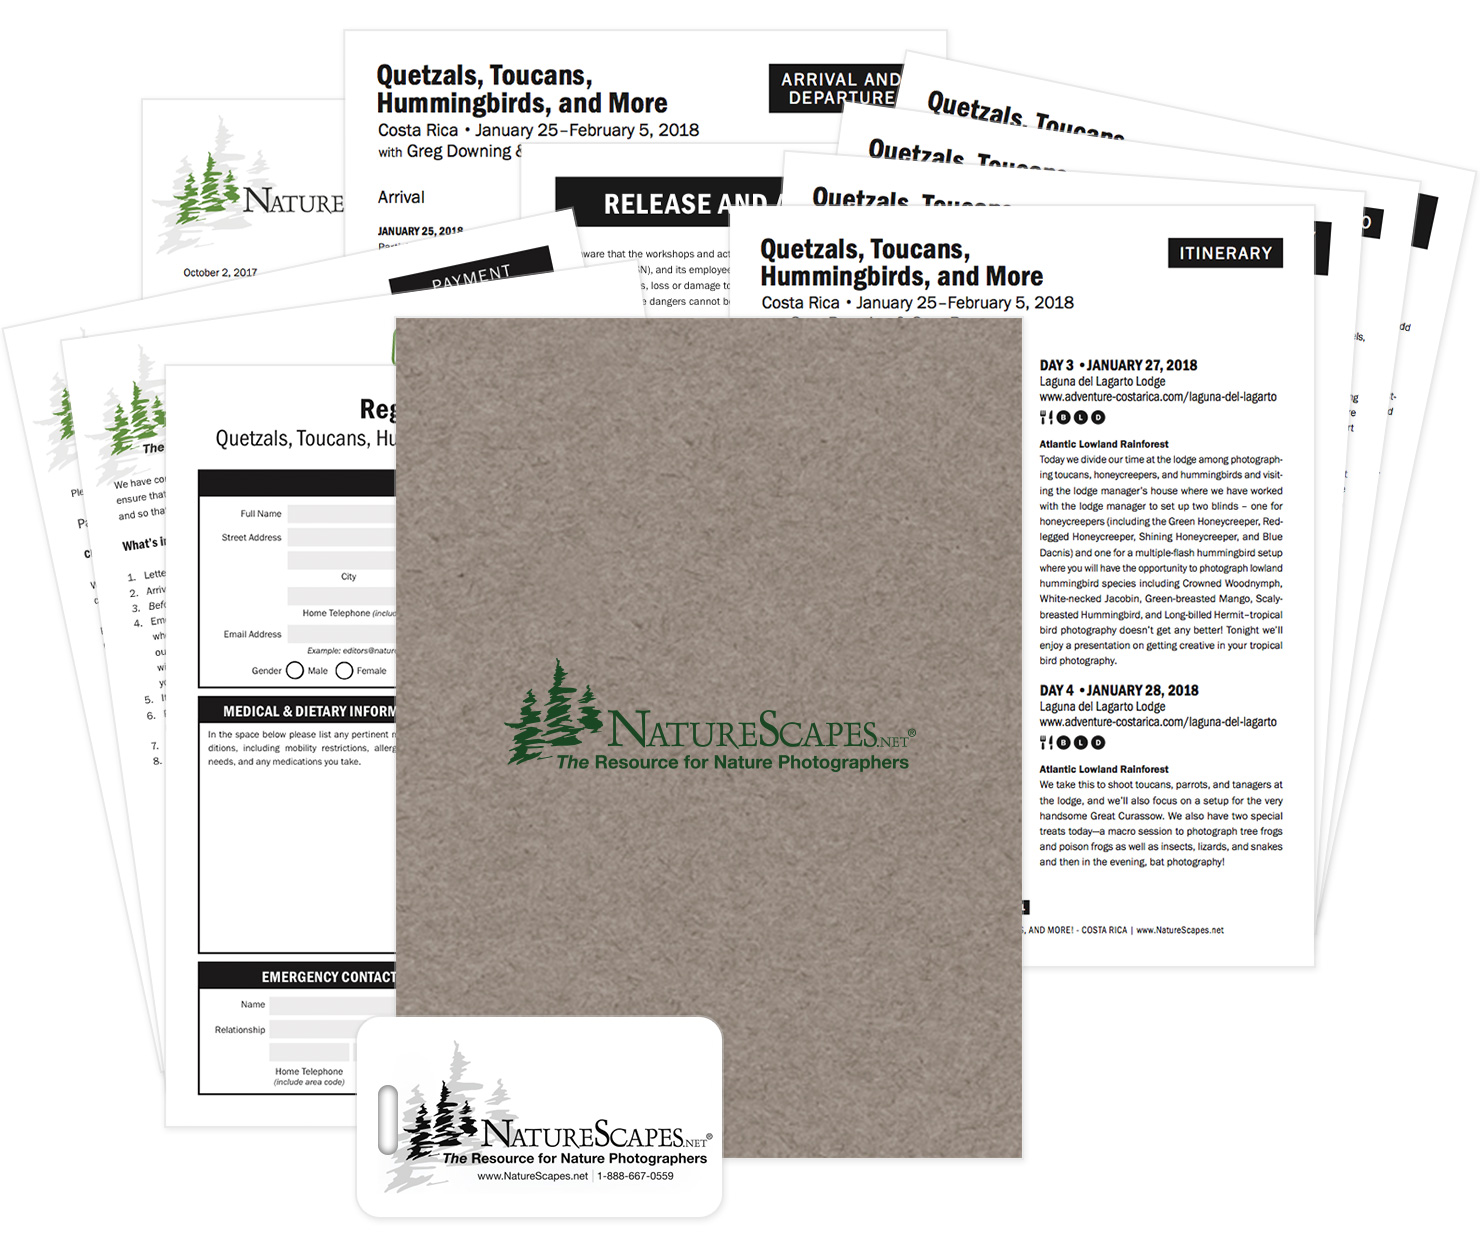 NatureScapes.net Workshop and Tour welcome folder with printed information and luggage tag.